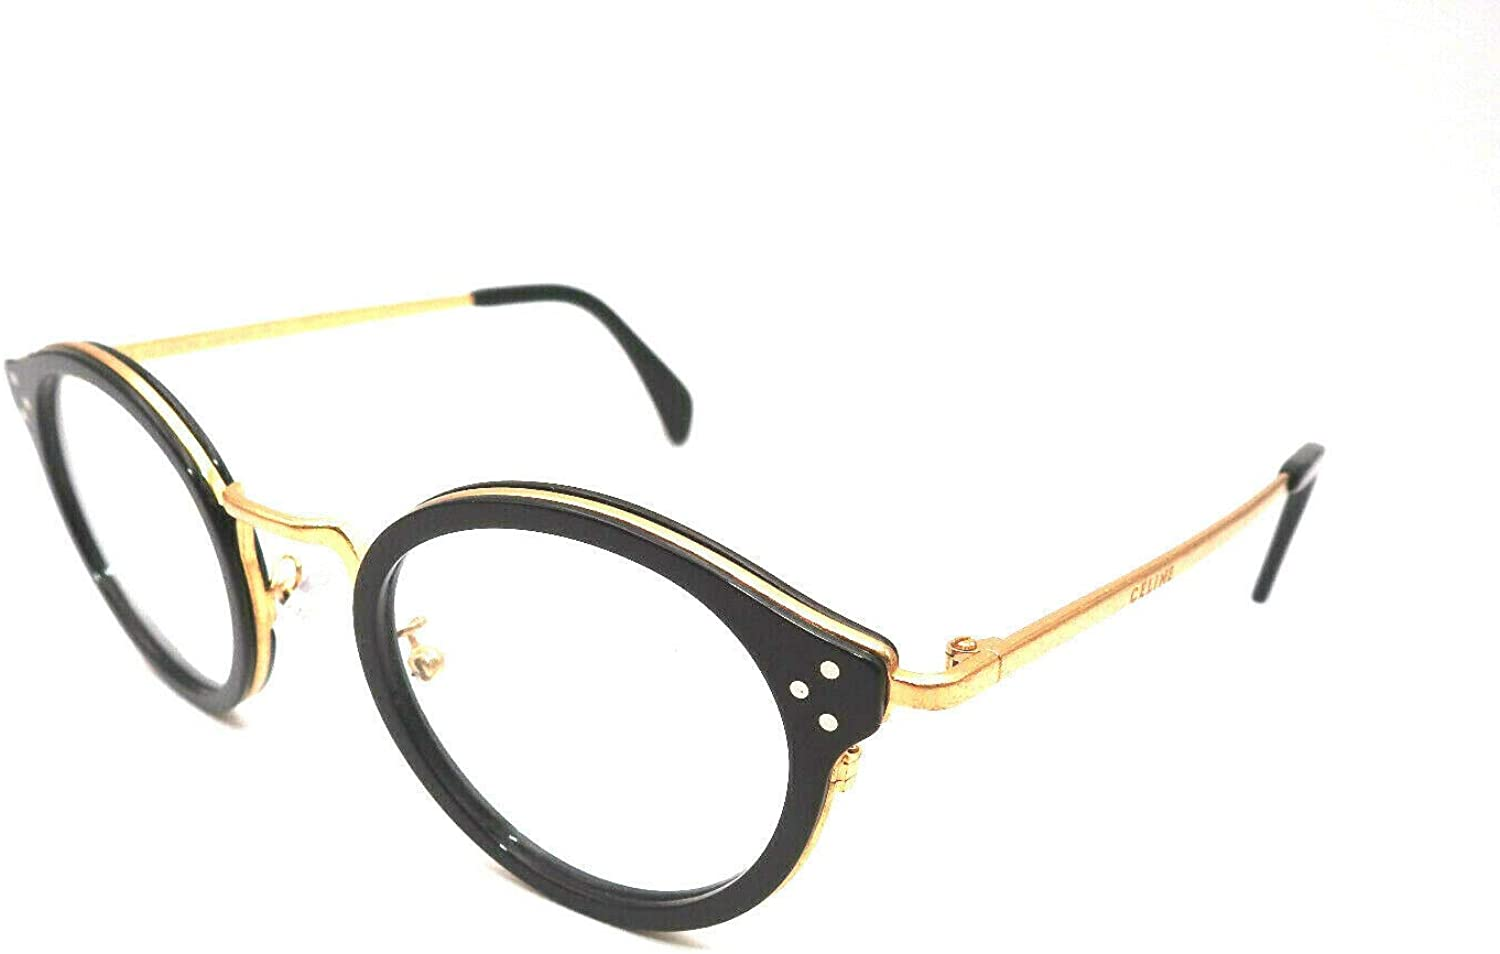 Celine CL50001U - 001 METAL Eyeglass Frame Distressed Gold/Black 46mm